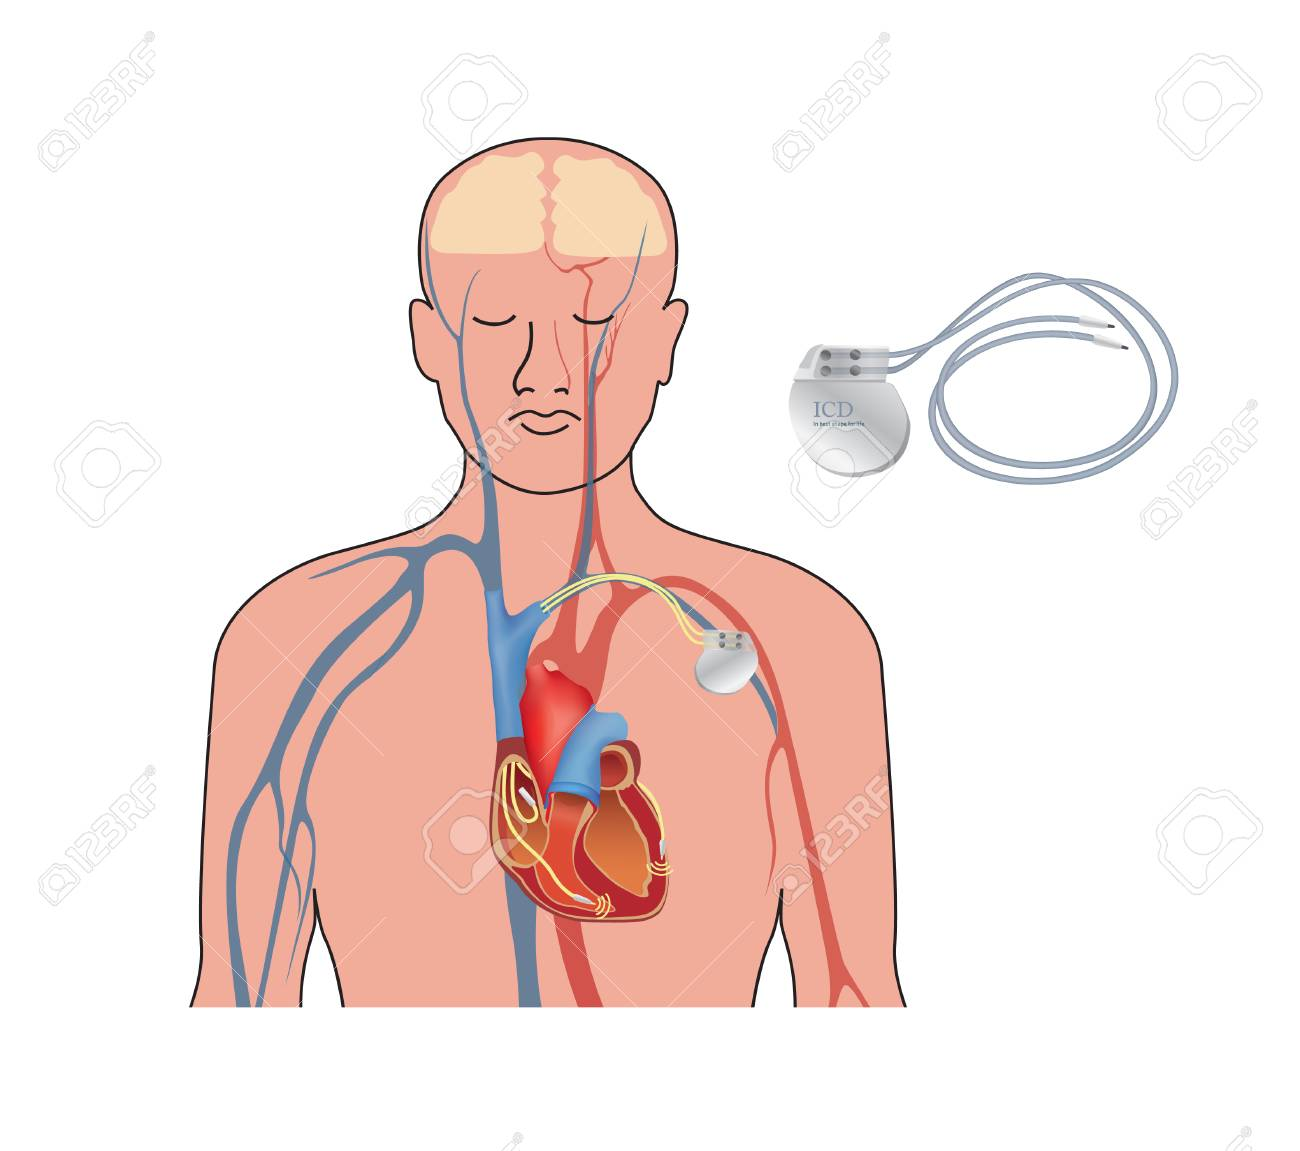 Heart pacemaker. Human heart anatomy cross section with working implantable cardioverter defibrillator. - 103271783